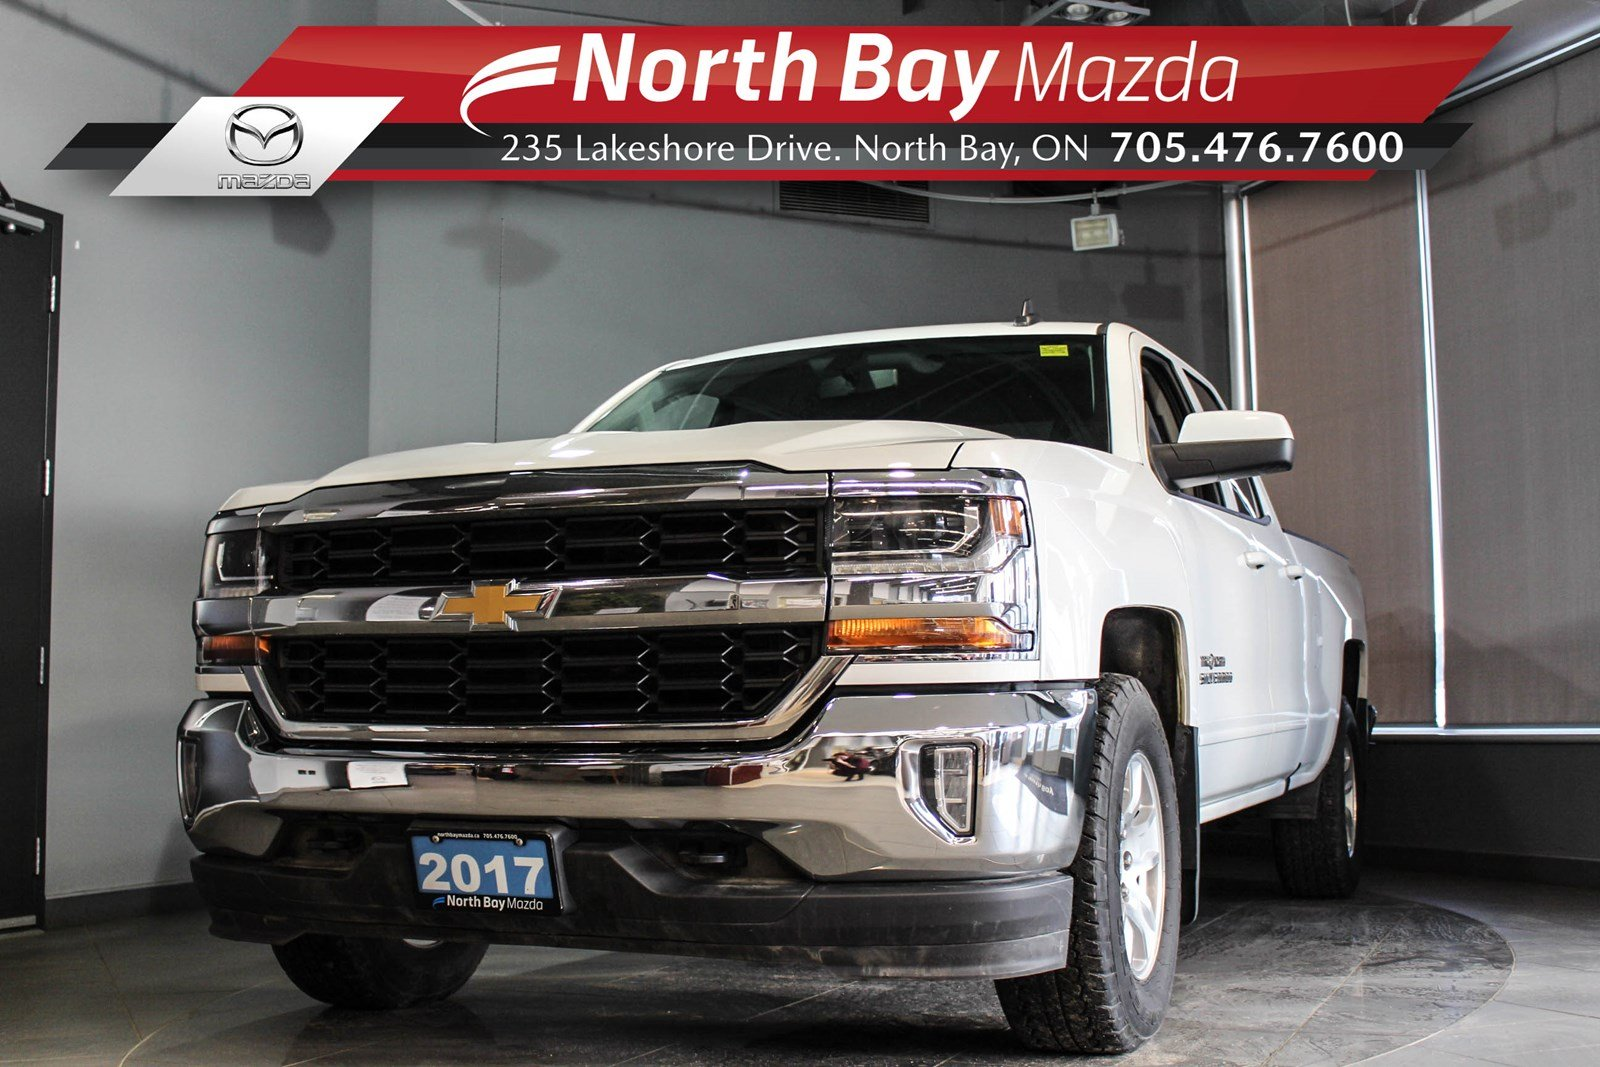 Pre-Owned 2017 Chevrolet Silverado LT Double Cab 4X4 with Bluetooth, Heated Seats